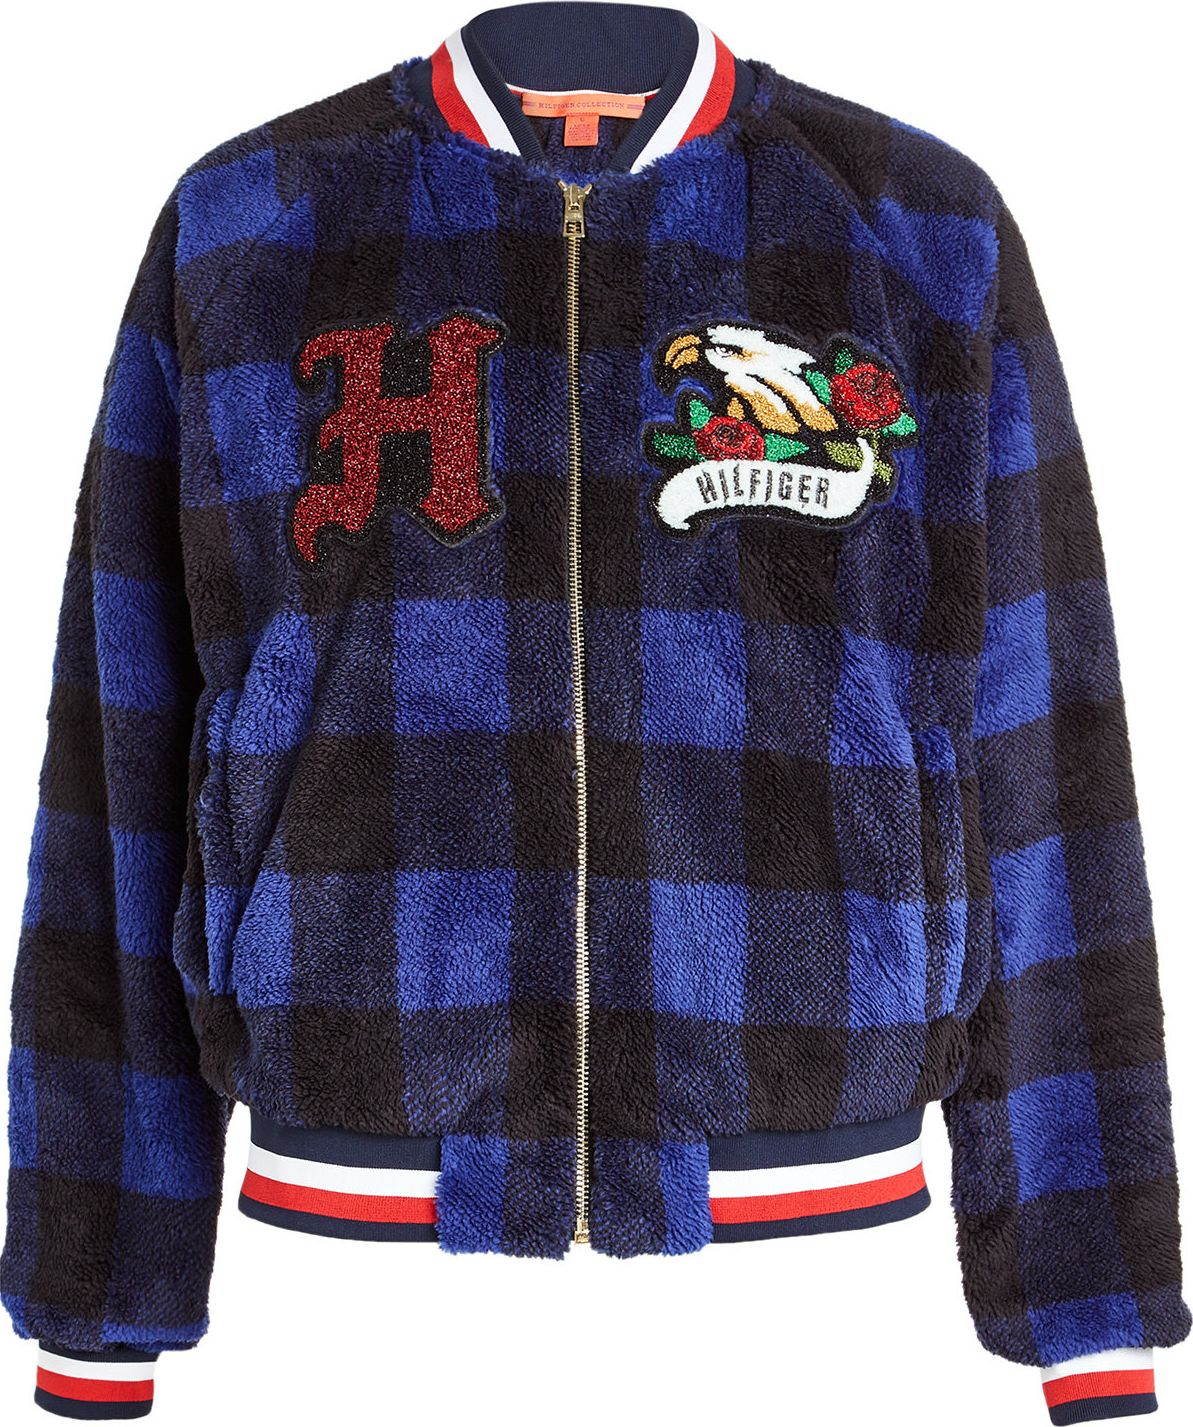 Hilfiger Collection - Bomber Jacket with Appliqués